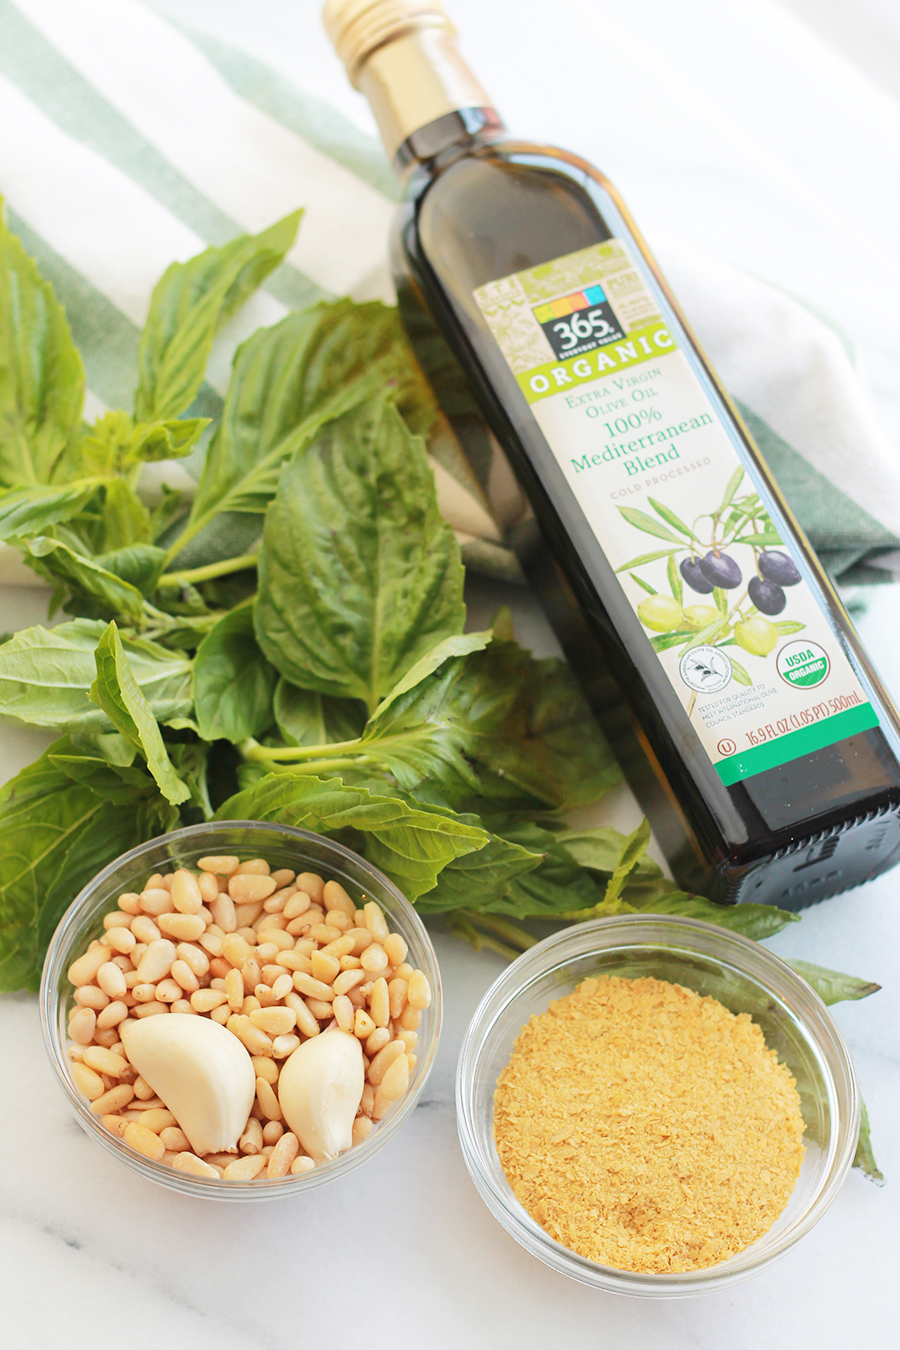 Bottle of olive oil, fresh basil, pine nuts, garlic cloves, and nutritional yeast.